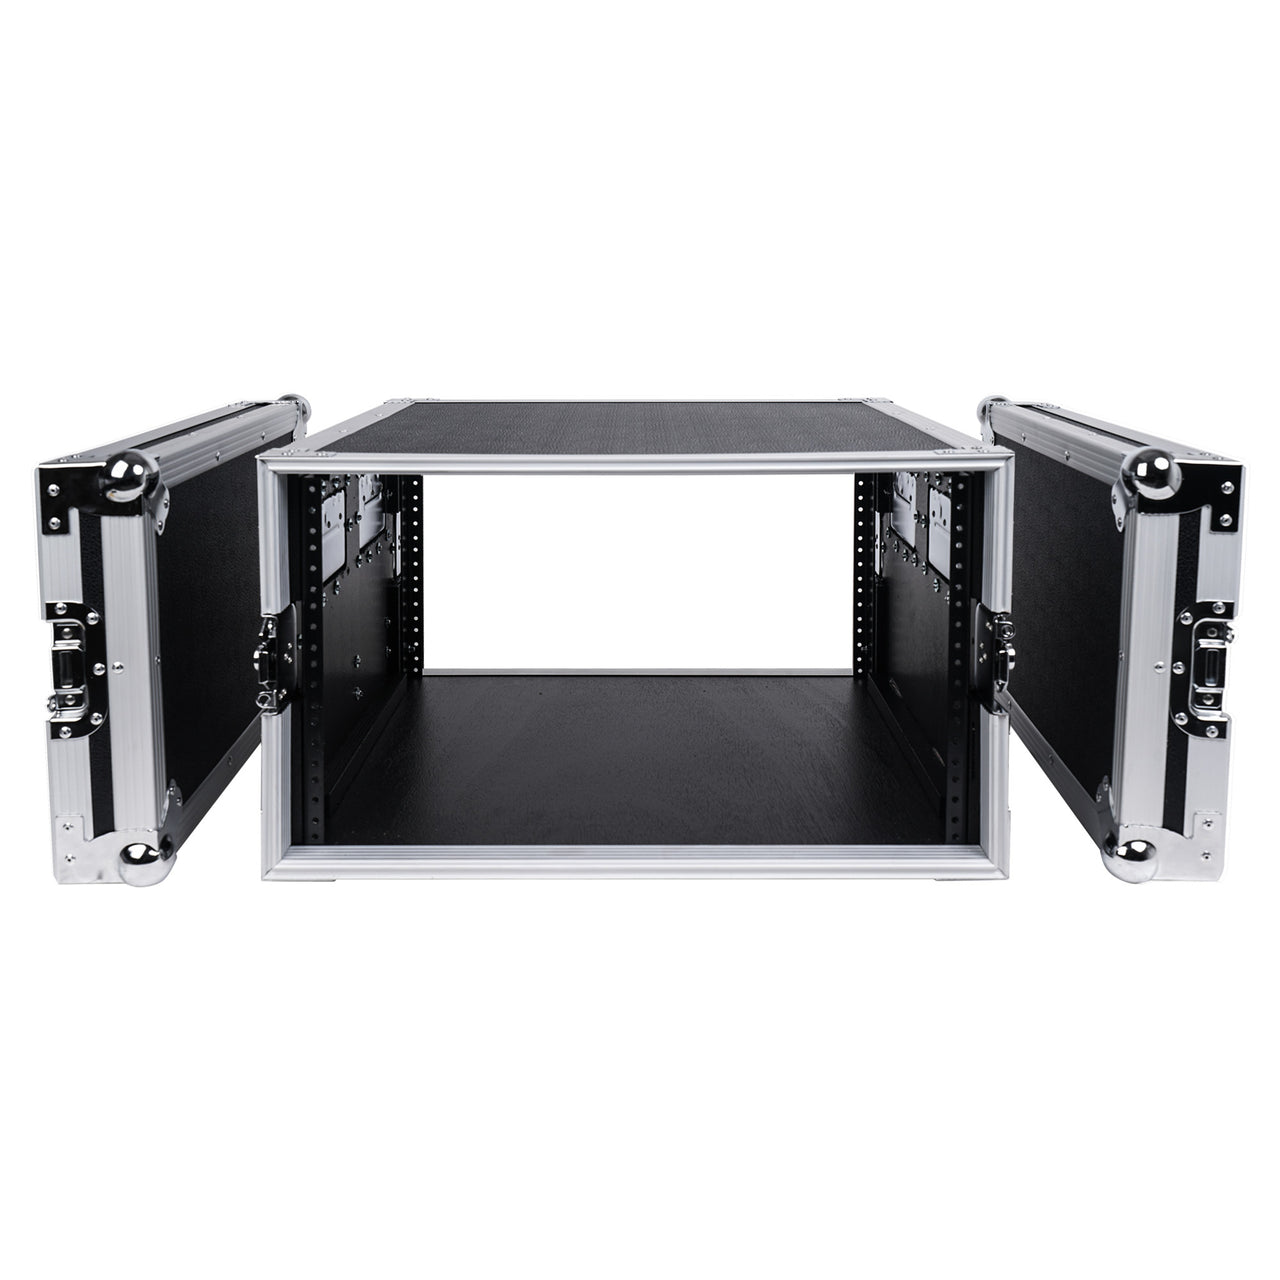 "Sound Town STRC-6U 6U (6 Space) PA DJ Rack Road Flight Case with 17"" Depth, Plywood, Metal Ball Corners - inner compartment with removable cover lids"